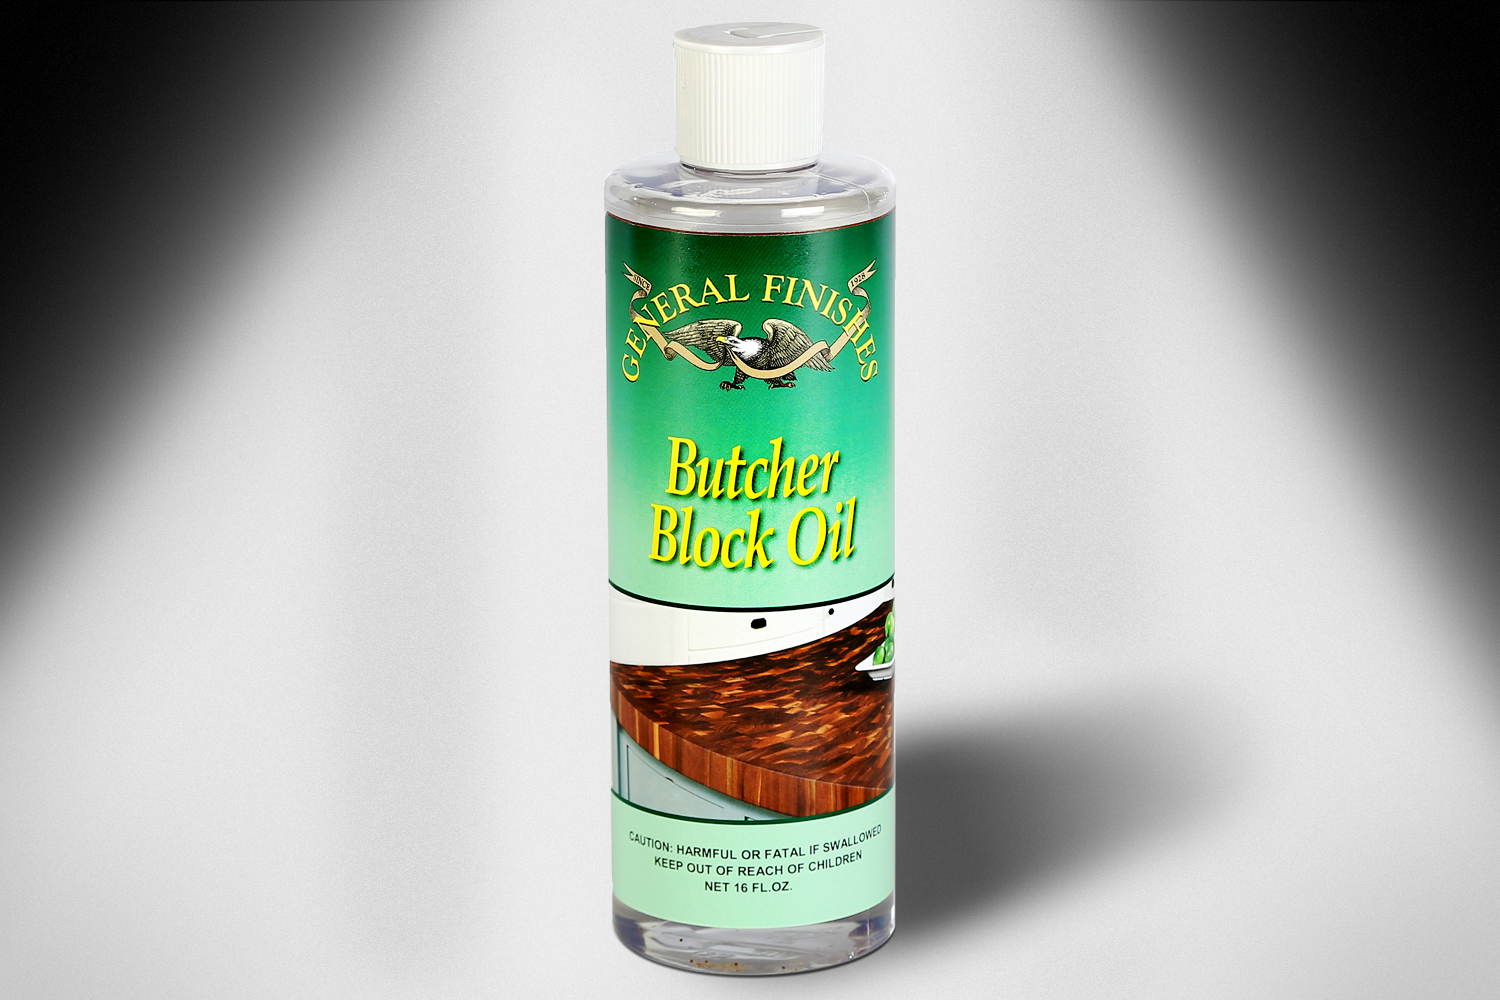 General Finishes Butcher Block Oil Pint